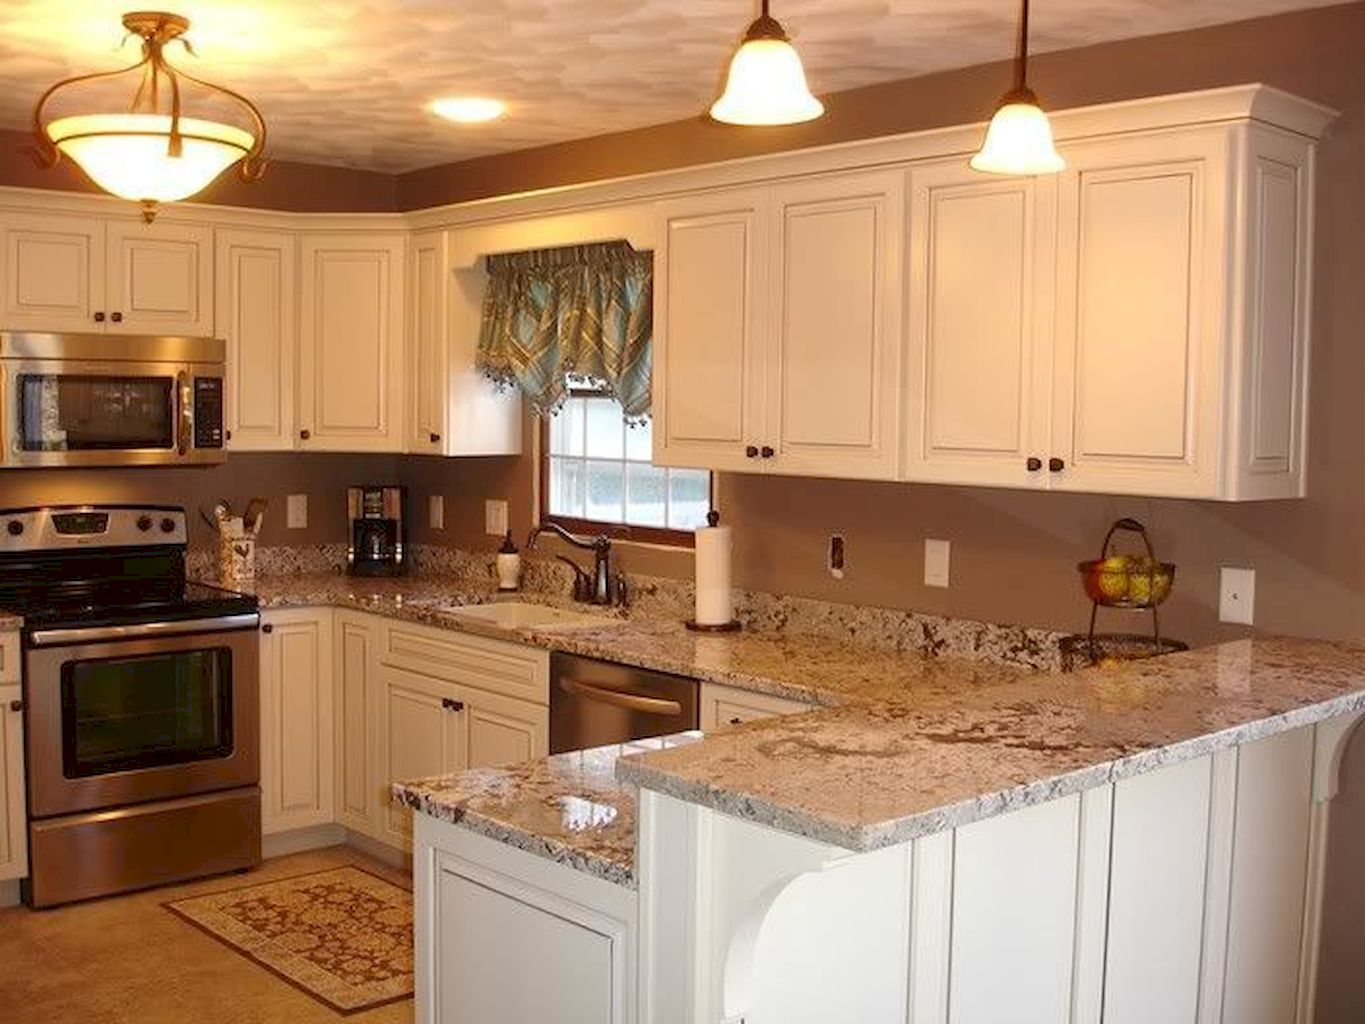 Kitchen Plan And Design For Small Room (8)